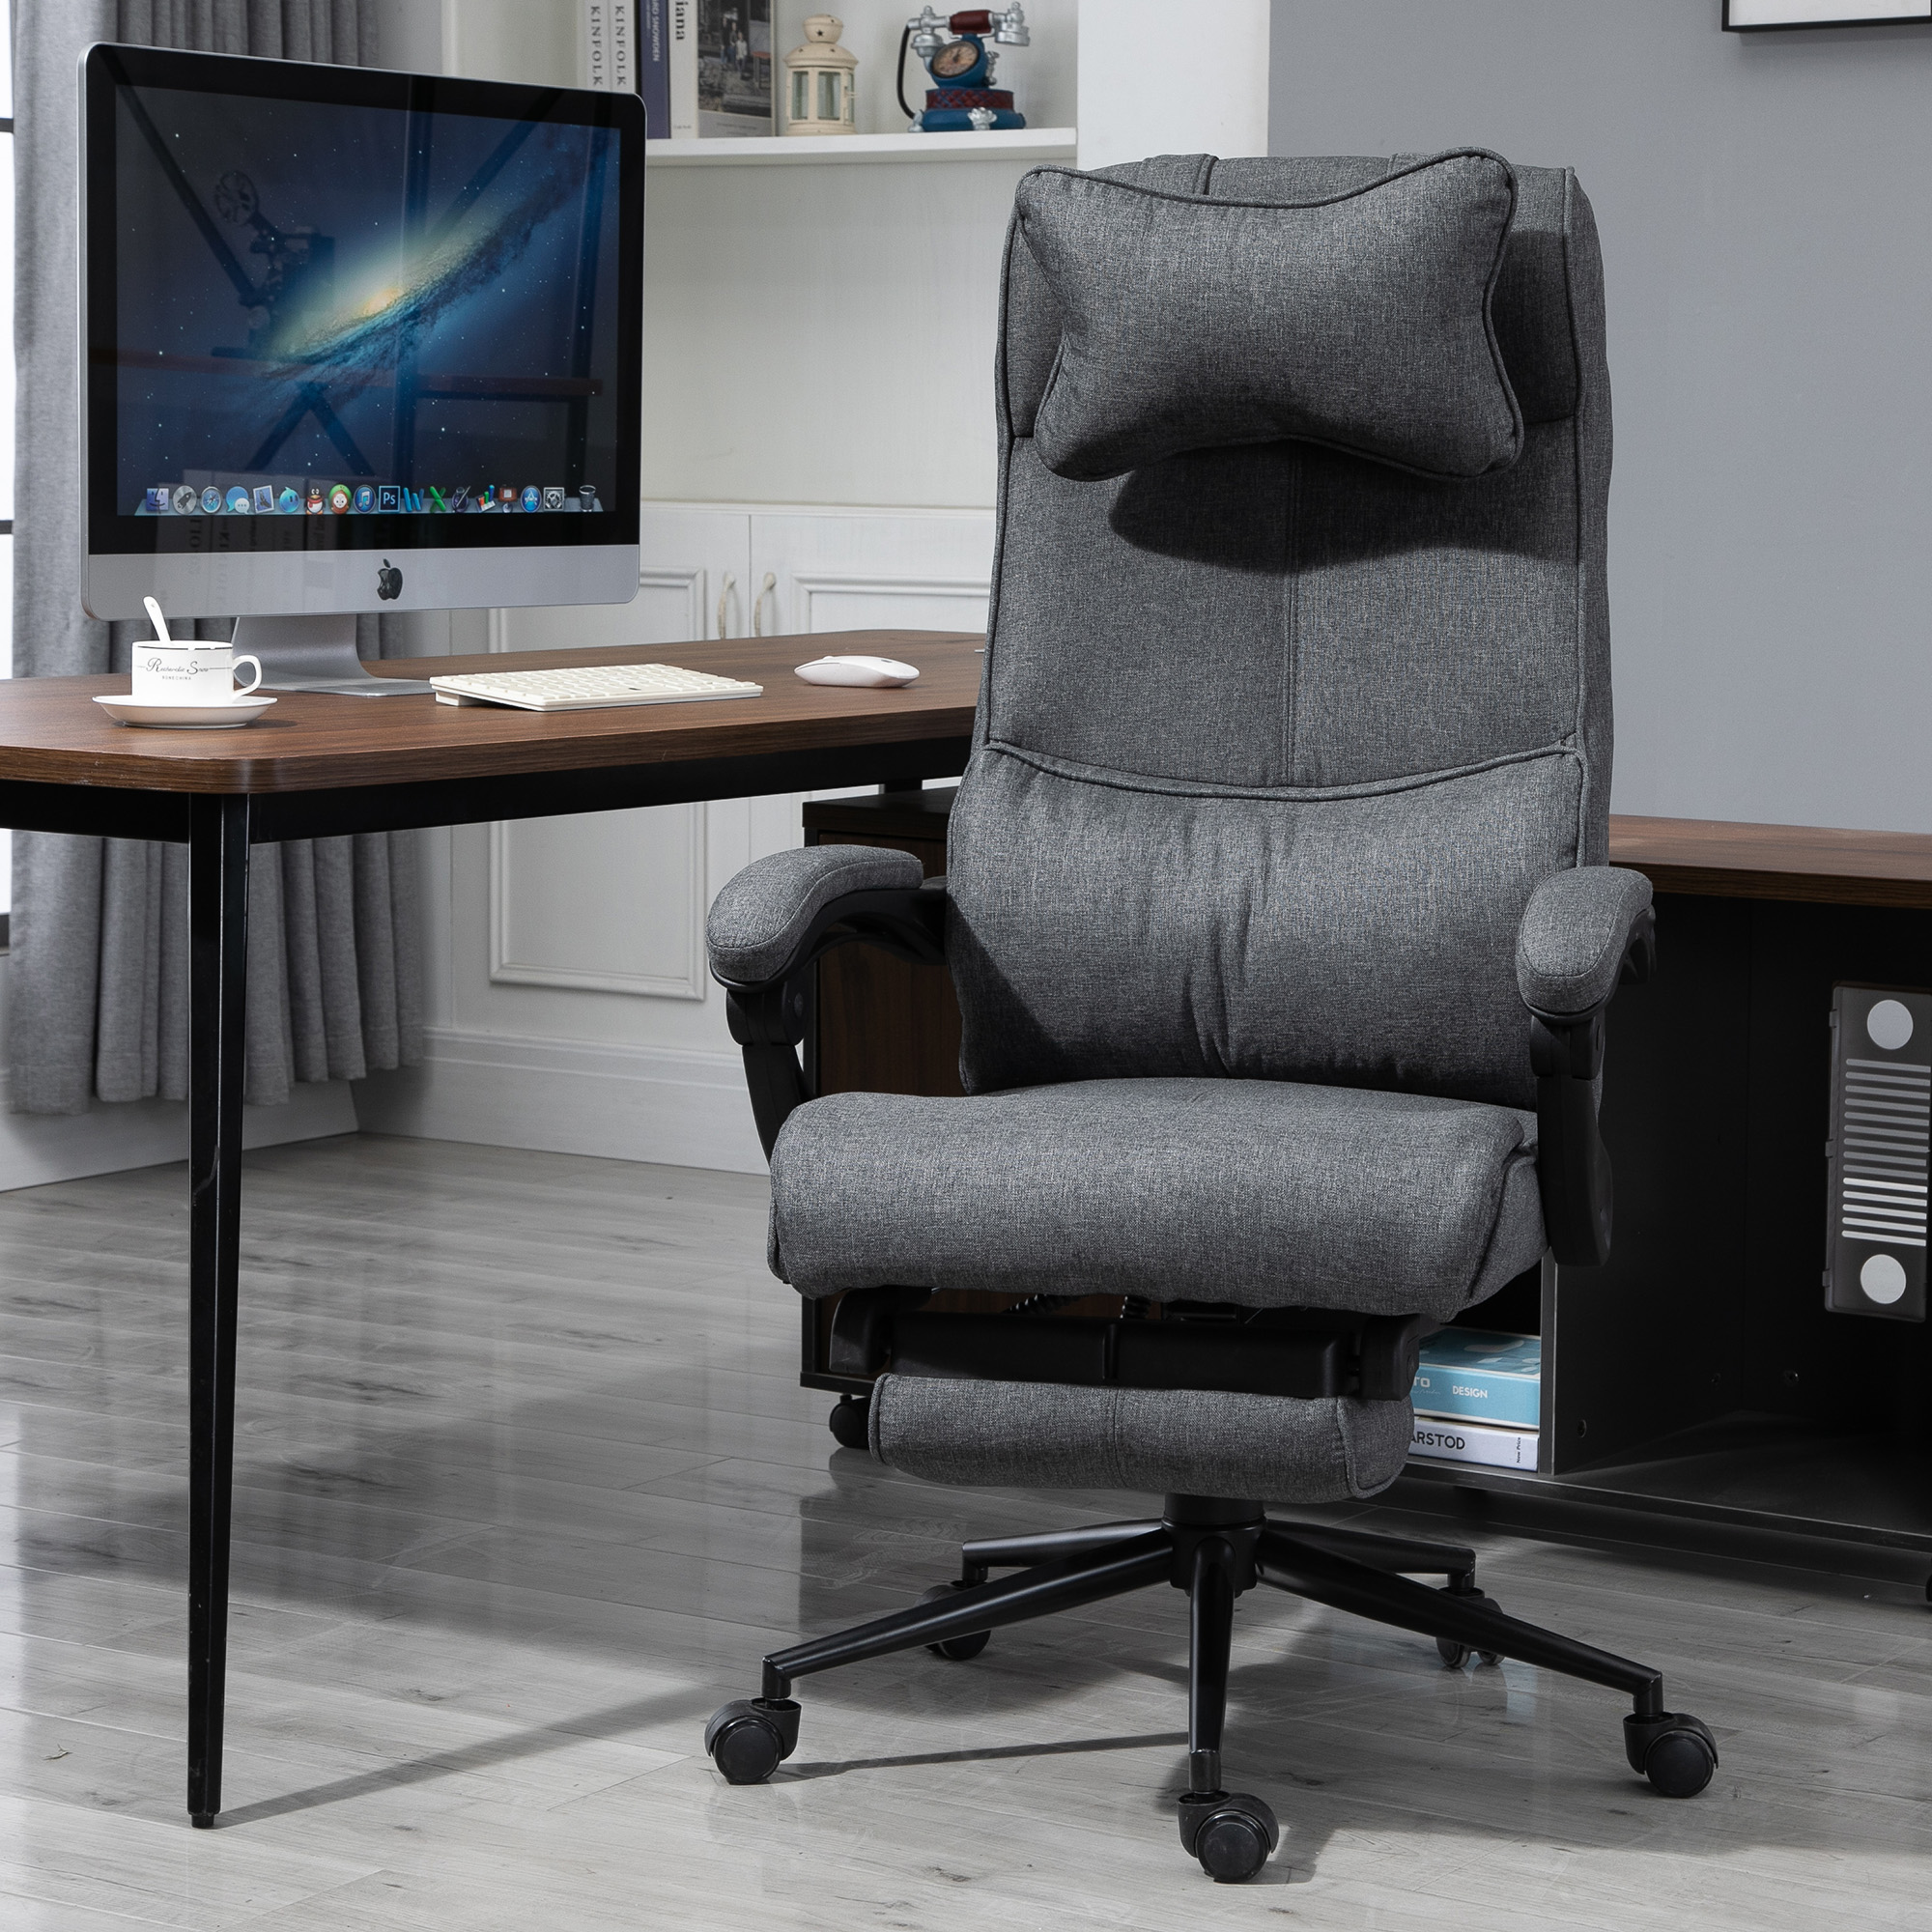 Vinsetto Reclining Home Office Chair Executive Adjustable Rolling Swivel Chair 842525119450 Ebay